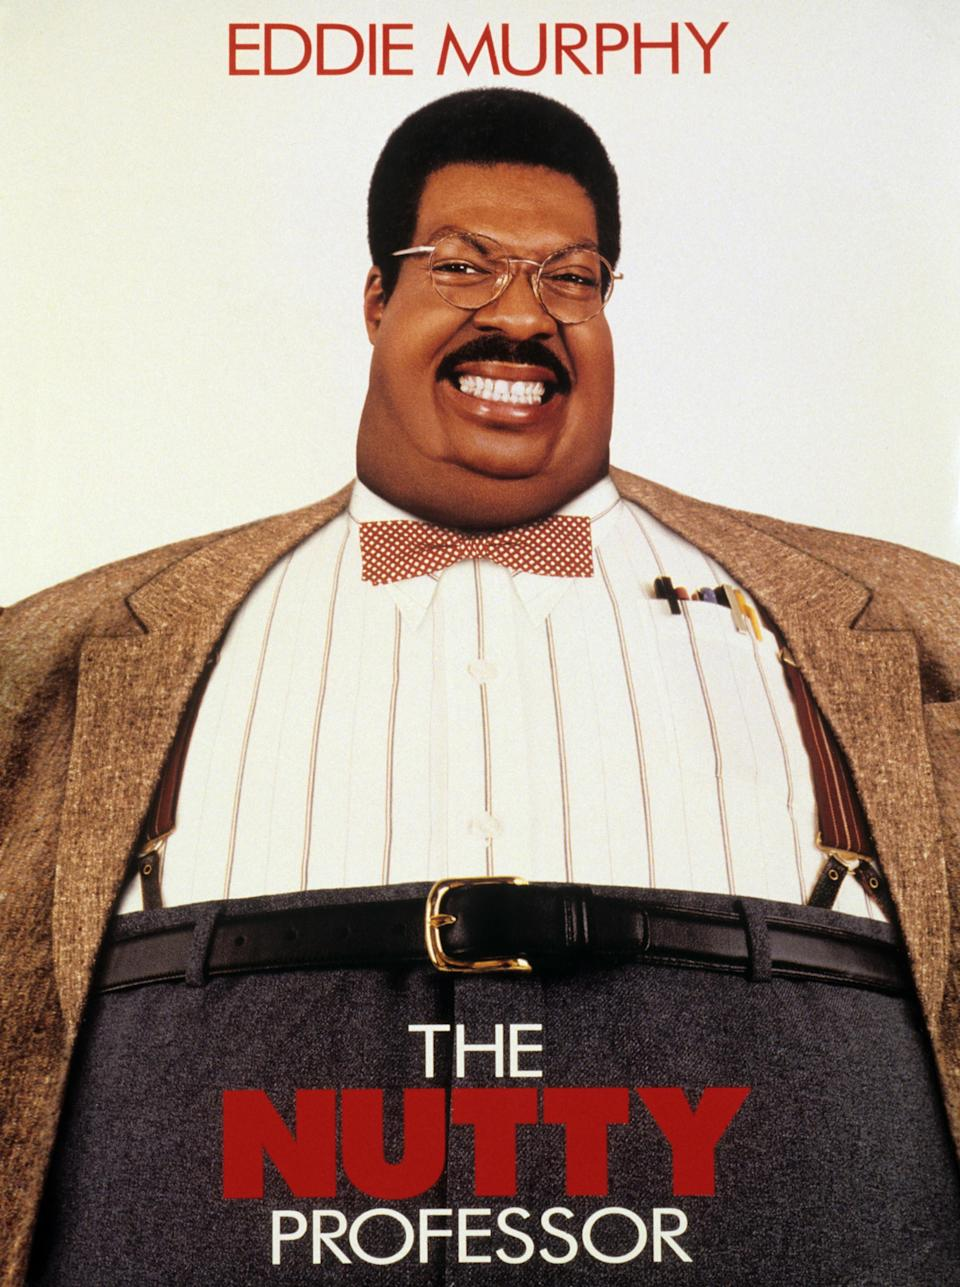 Eddie Murphy in the poster for the film